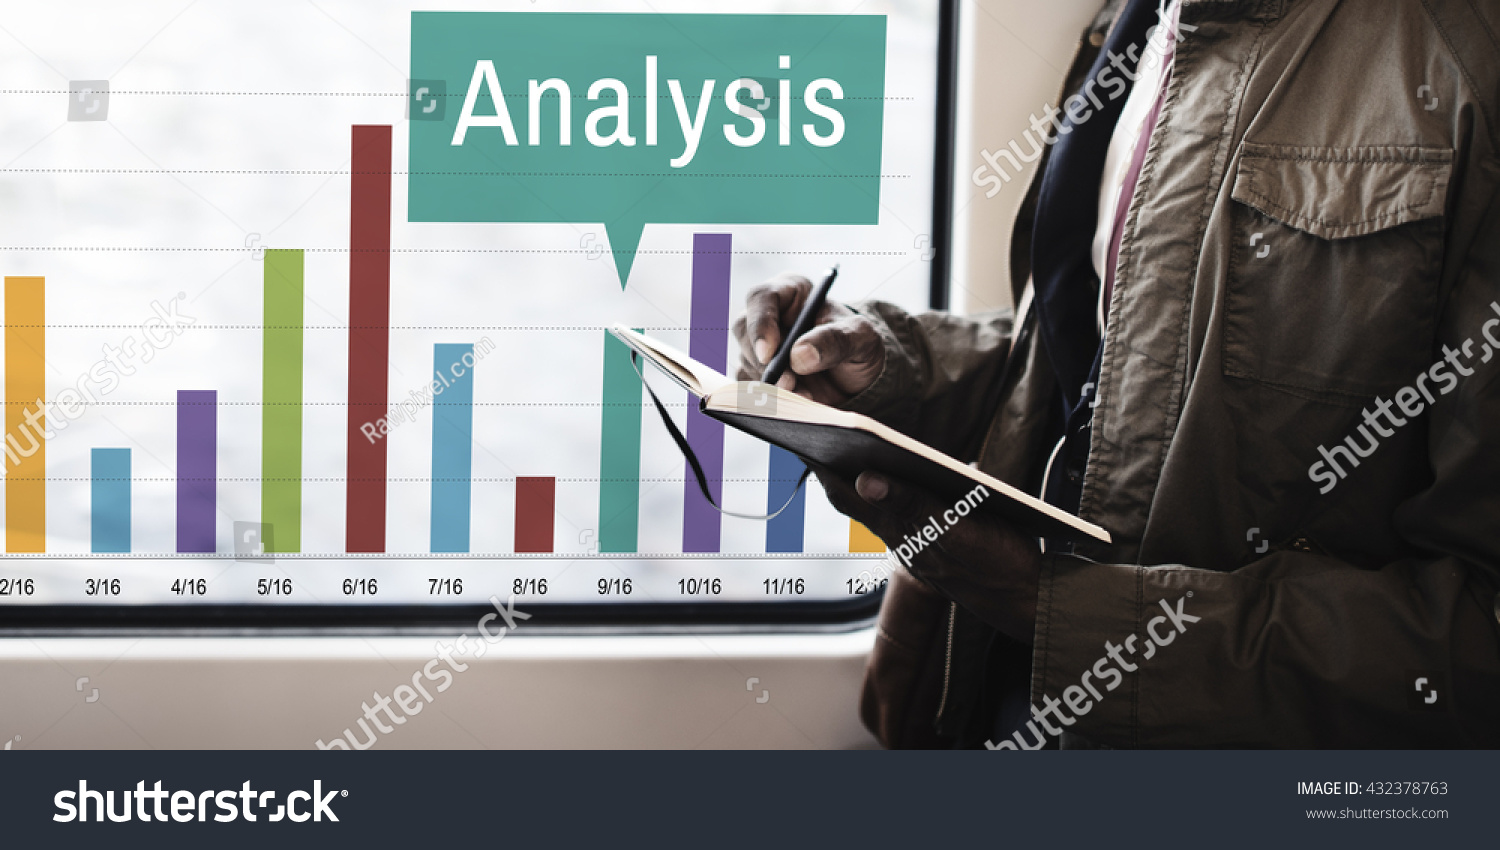 an analysis of principle economic indicators Nopat calculation nopat is an economic principle that measures a companys net operating profit after taxes have been deducted for all investors, shareholders and.